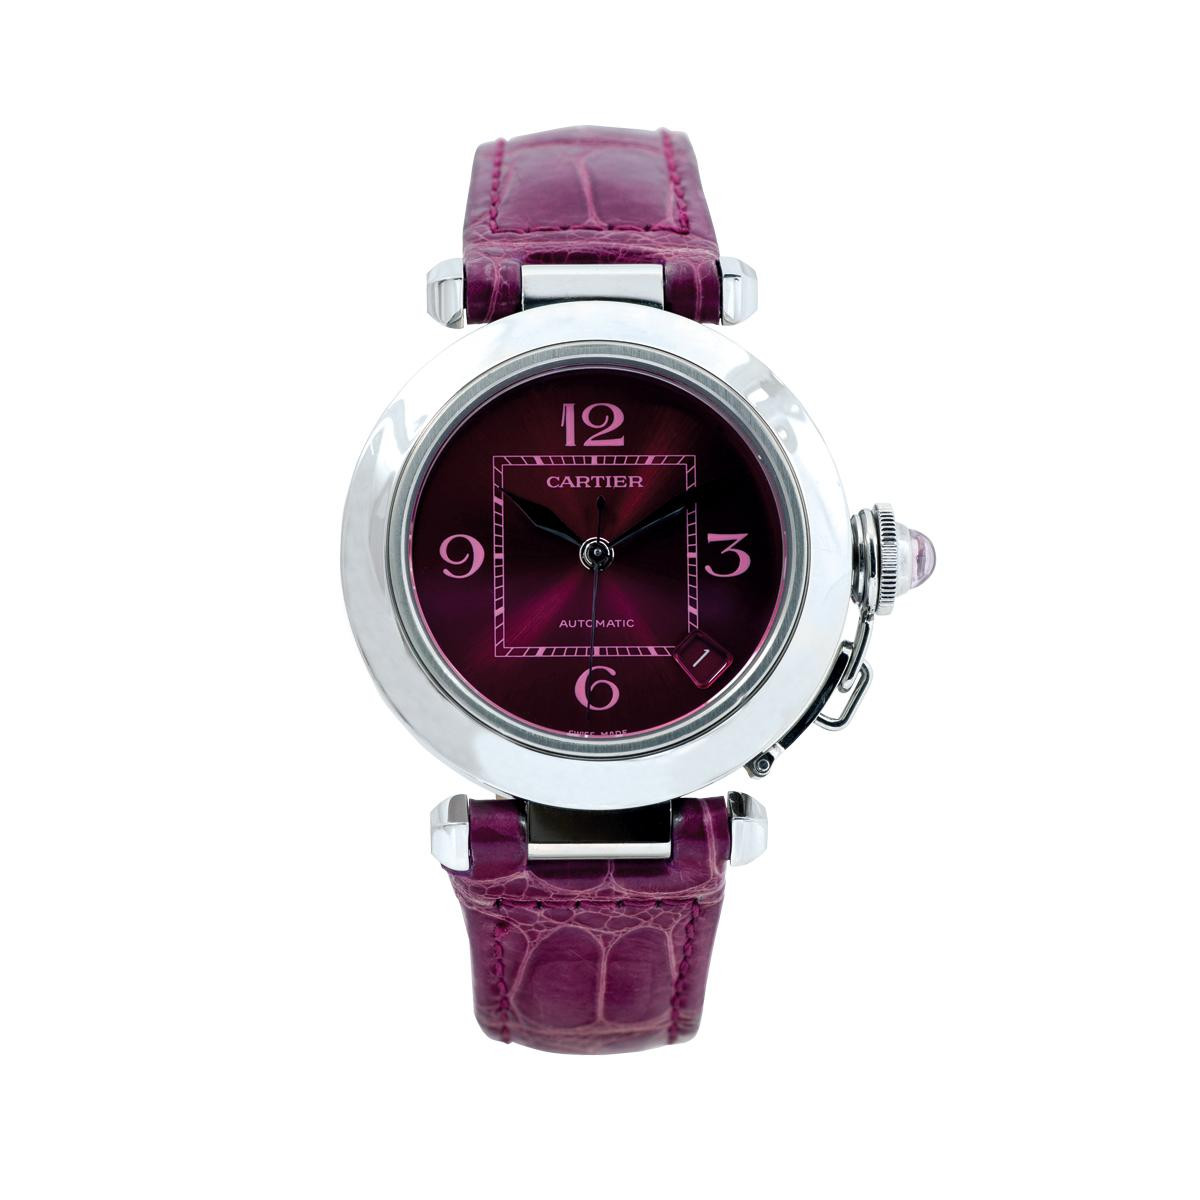 Preowned Woman's Purple Cartier Pasha